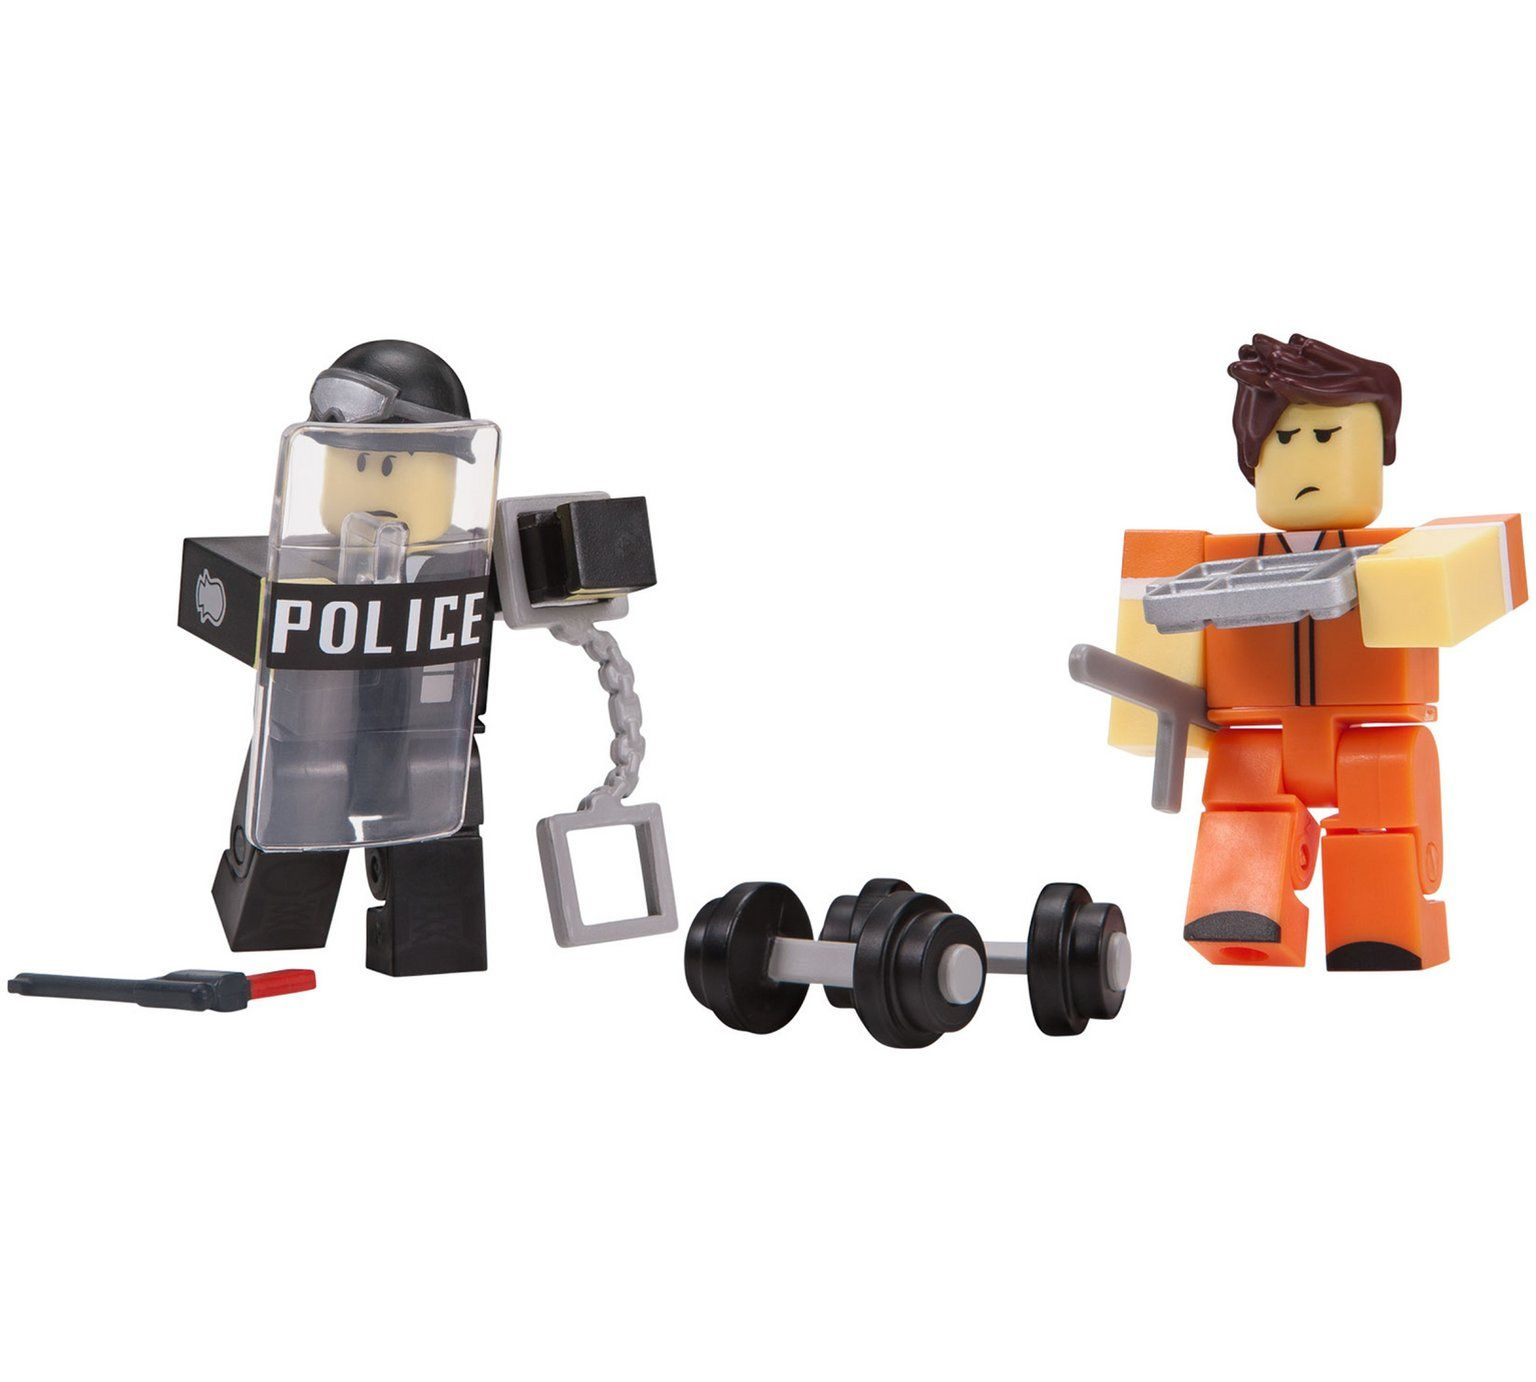 Buy Roblox Game Pack Assortment At Argos Co Uk Visit Argos Co Uk To Shop Online For Action Figures And Playsets Toys Roblox Roblox Animation Action Figures